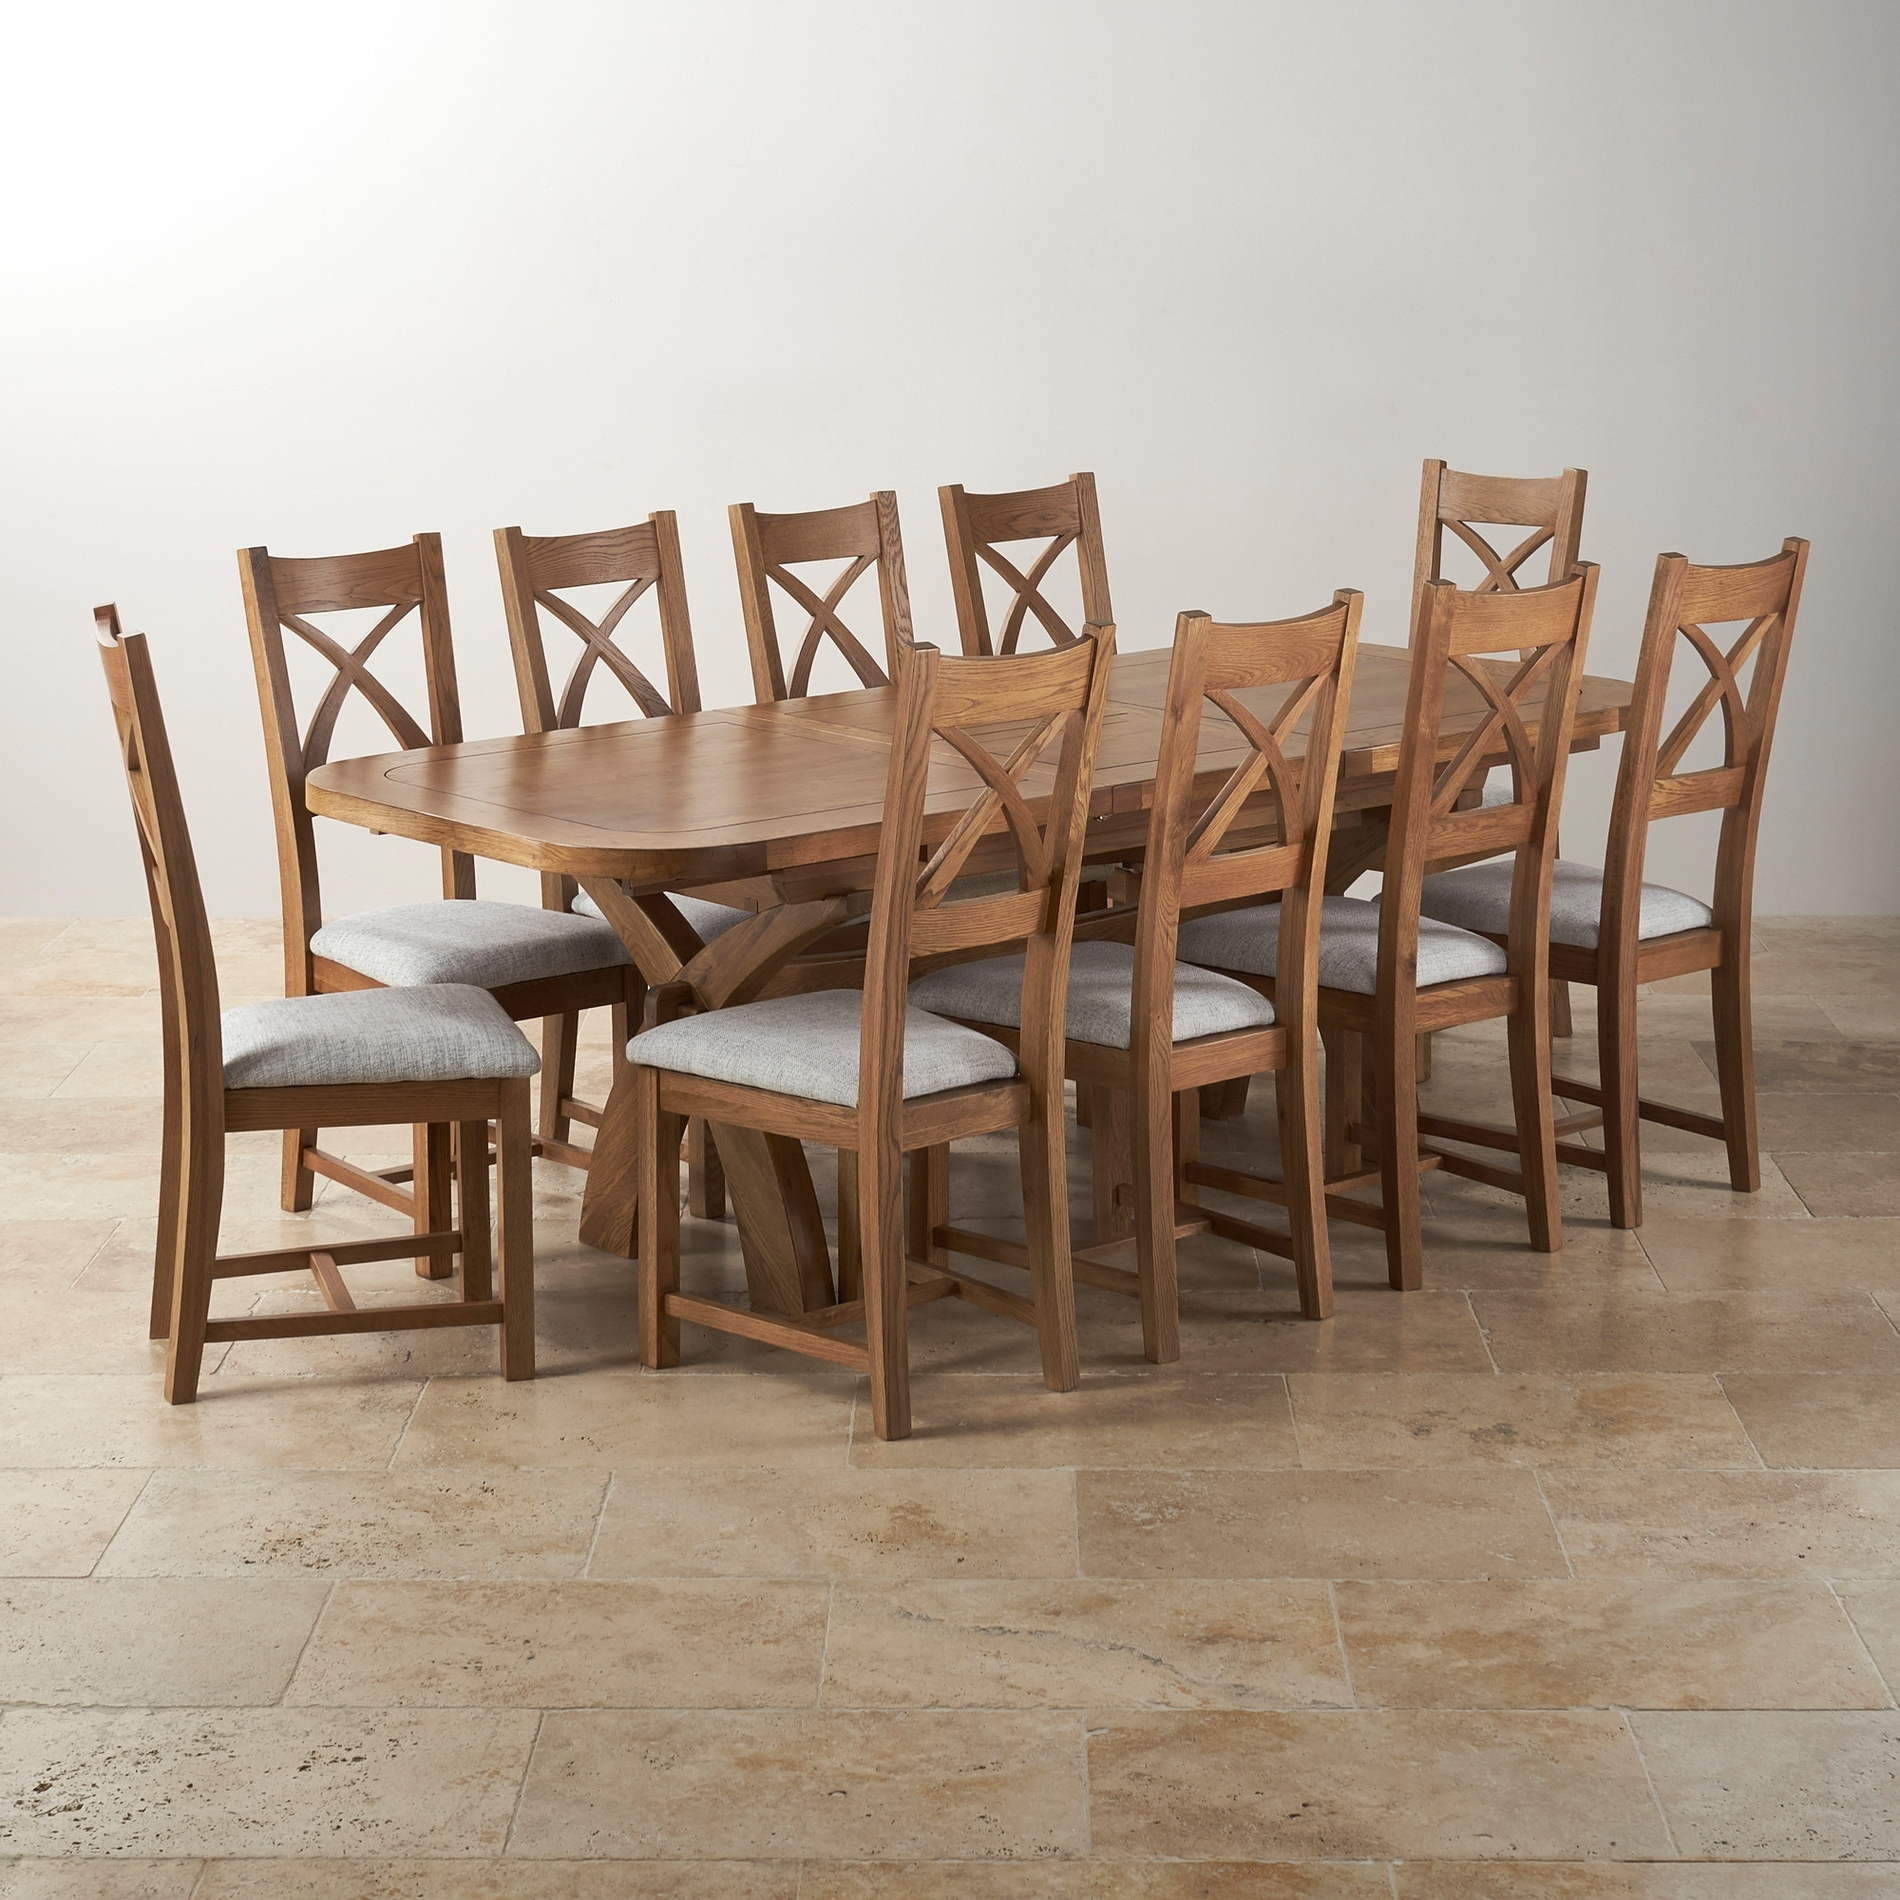 Fashionable Rustic Oak Dining Tables Inside Hercules Dining Set In Rustic Oak – Extending Table + 10 Chairs (View 4 of 25)